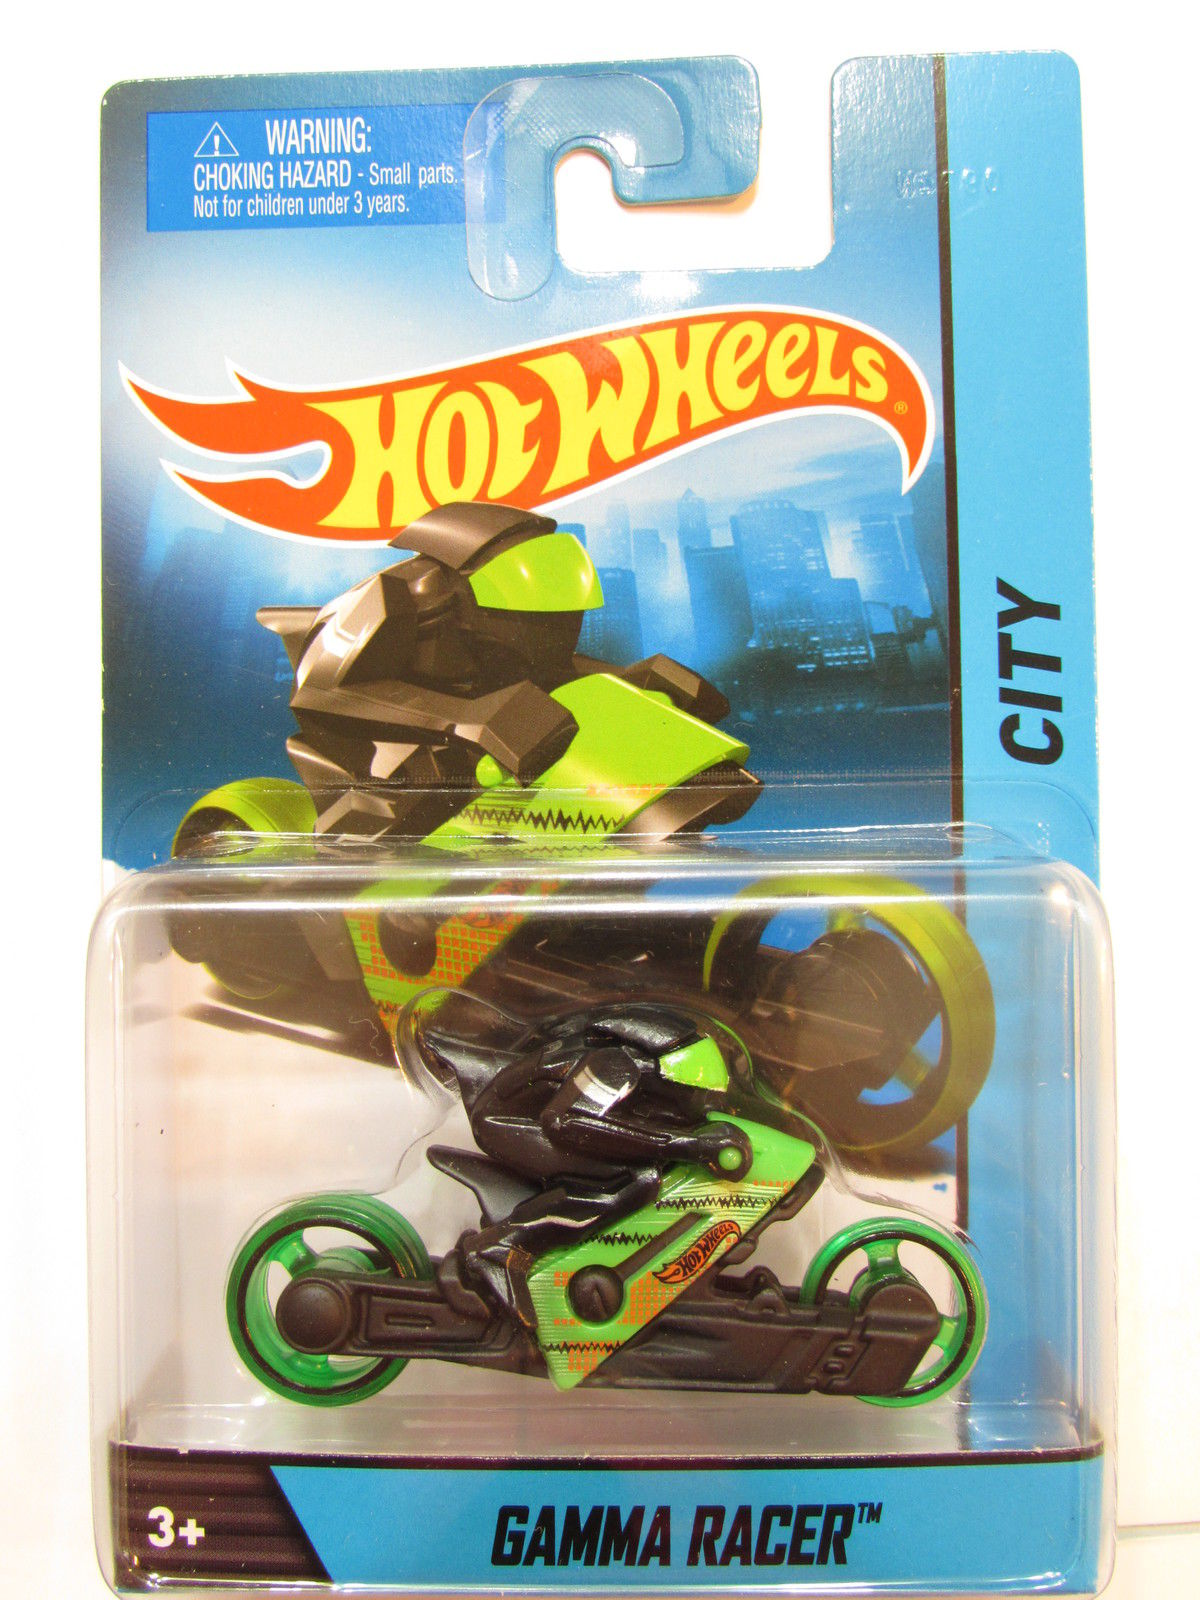 HOT WHEELS 2013 1:64 SCALE CITY - GAMMA RACER